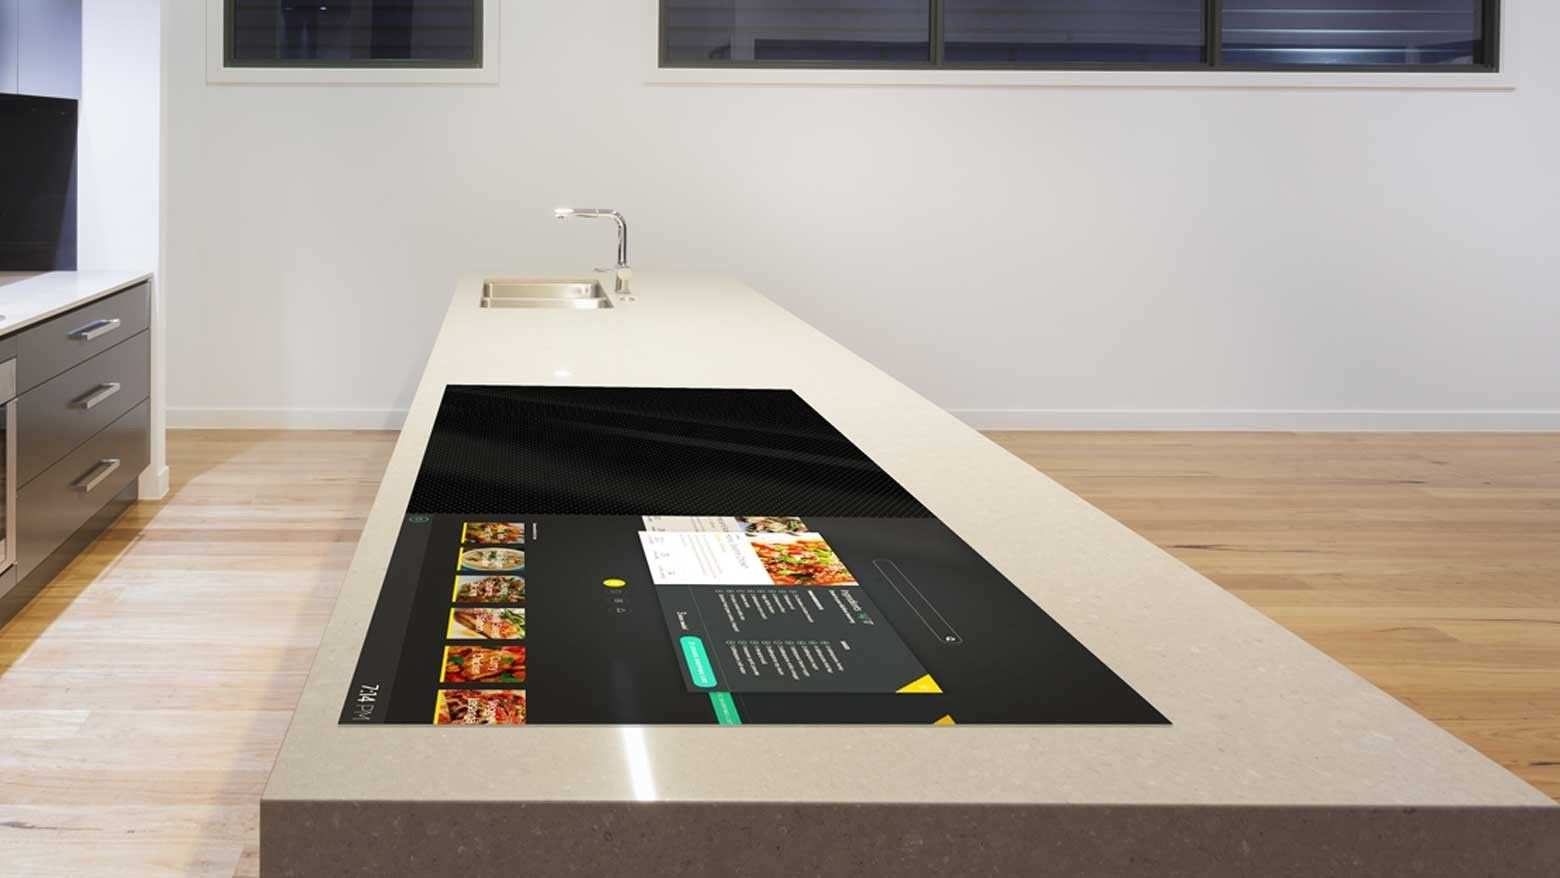 Dt Concepts The Smart Stove That Makes You A Better Cook Home Technology Interior Design Basics Futuristic Home